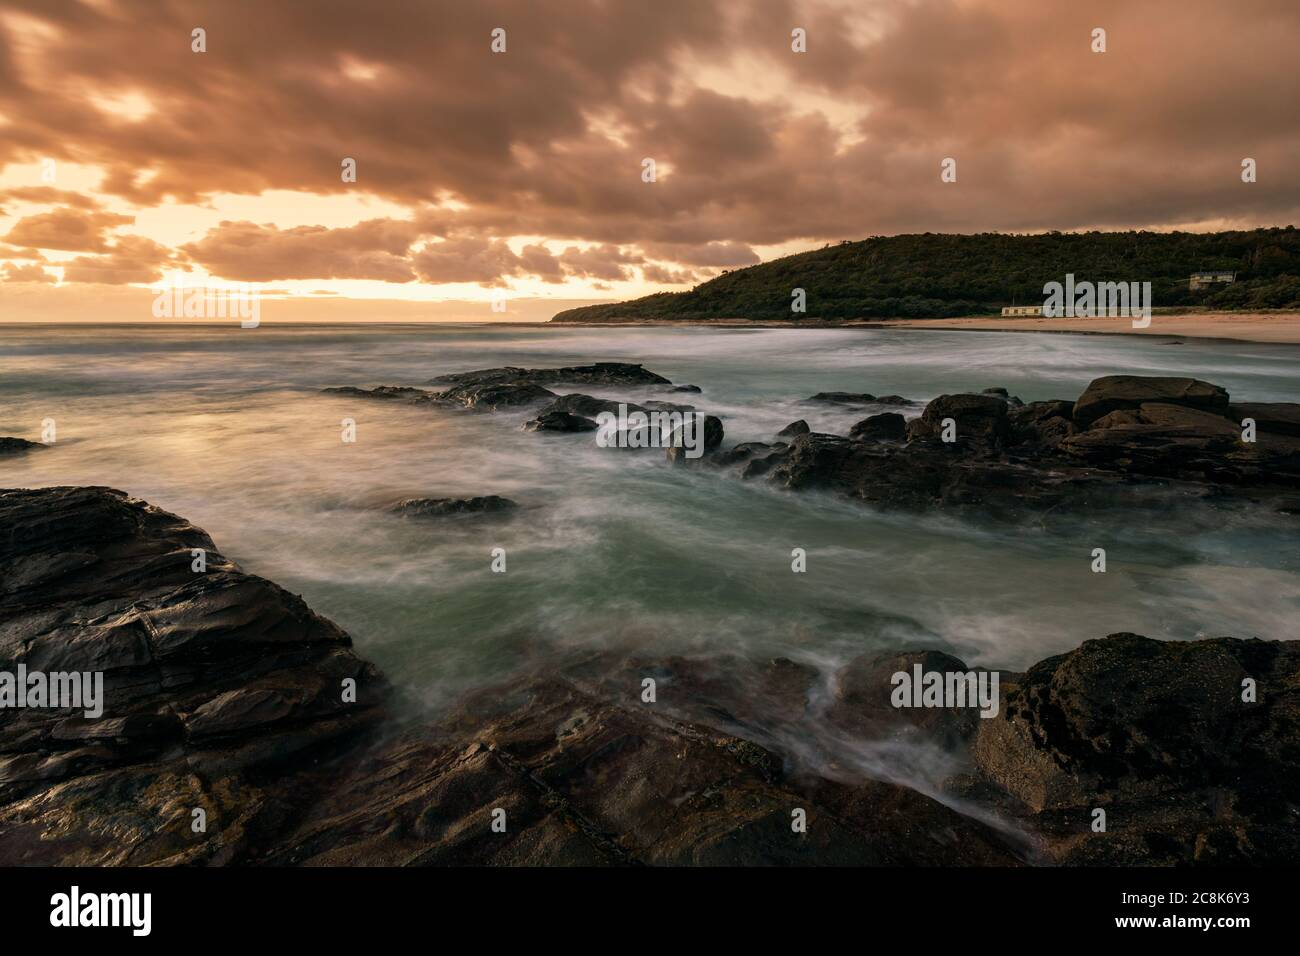 Sunrise at Kennett River along the famous Great Ocean Road. Stock Photo